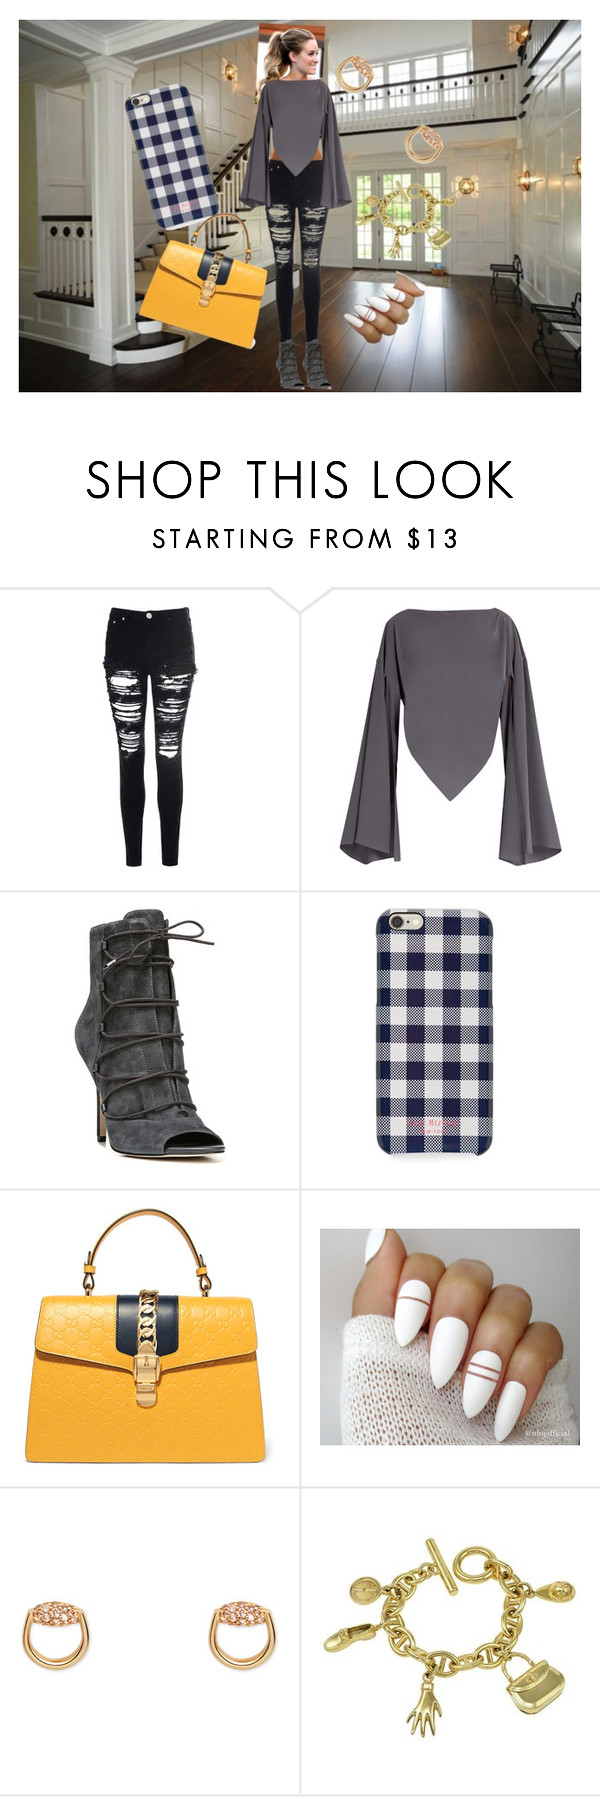 """Dark grey"" by boopreski ❤ liked on Polyvore featuring Glamorous, Balenciaga, Sam Edelman, Isaac Mizrahi, Gucci, classy, rippedjeans and bellsleeves"